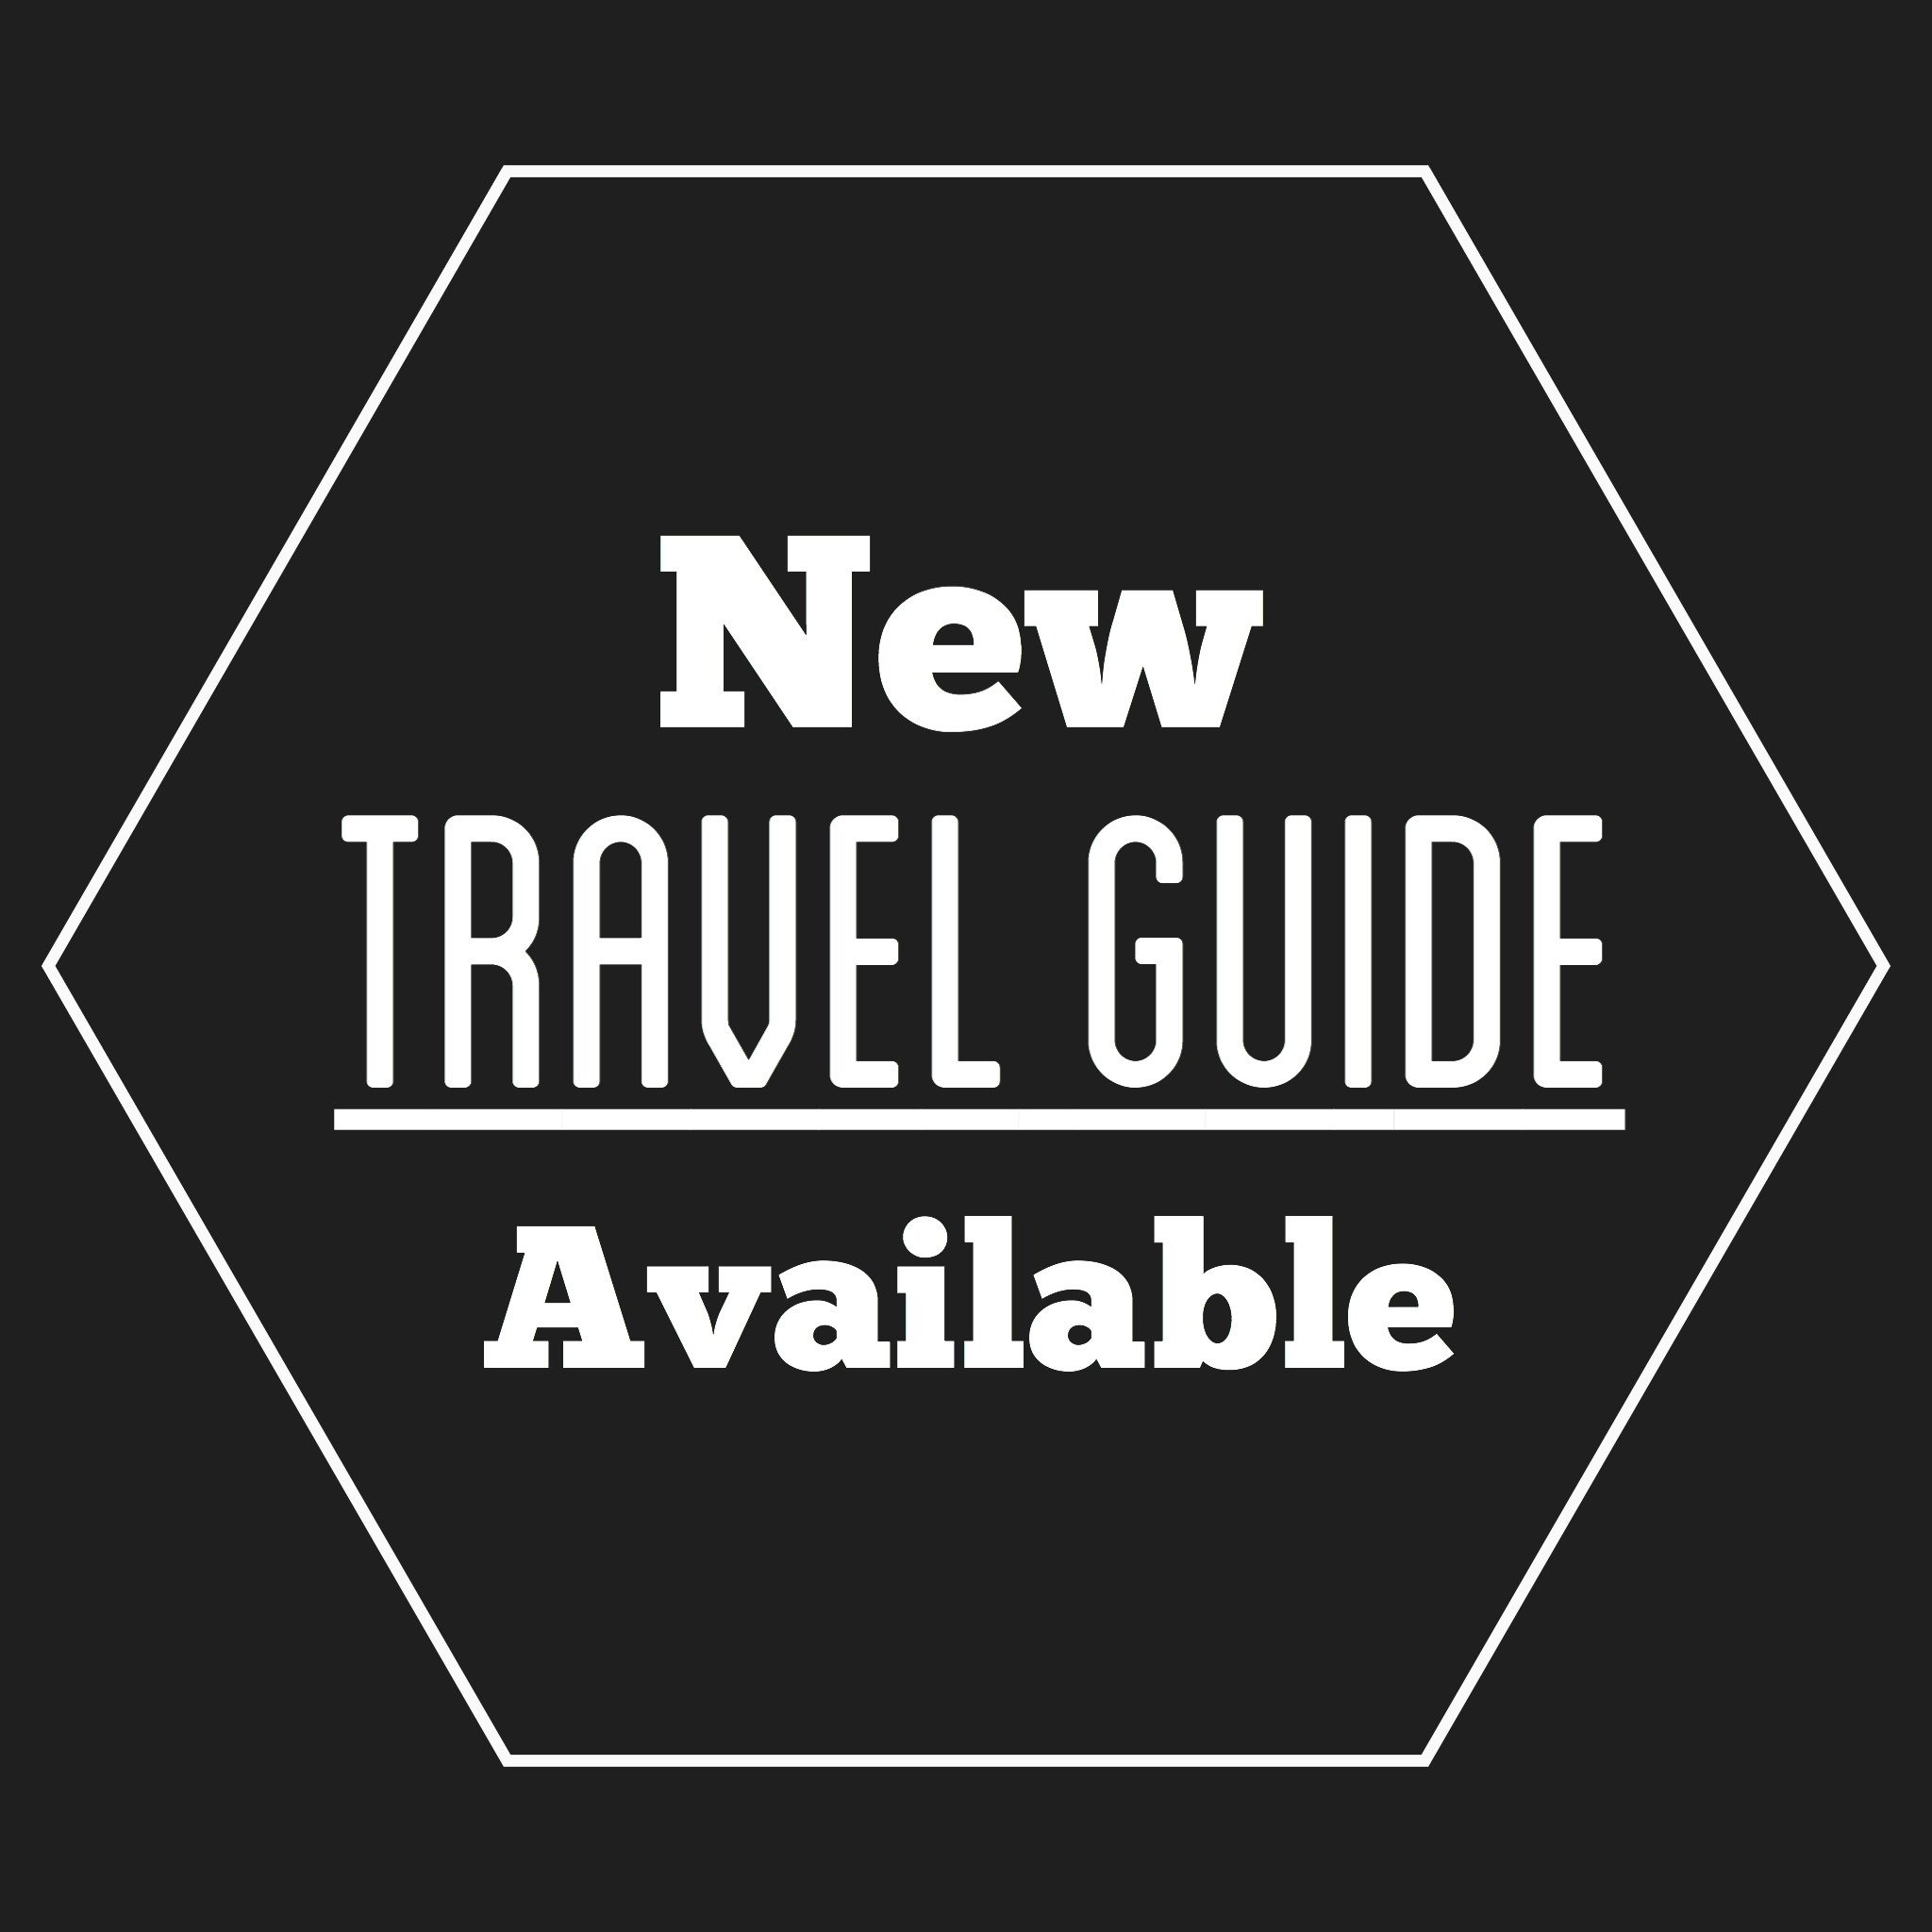 The San Francisco City Guide is Now Available!